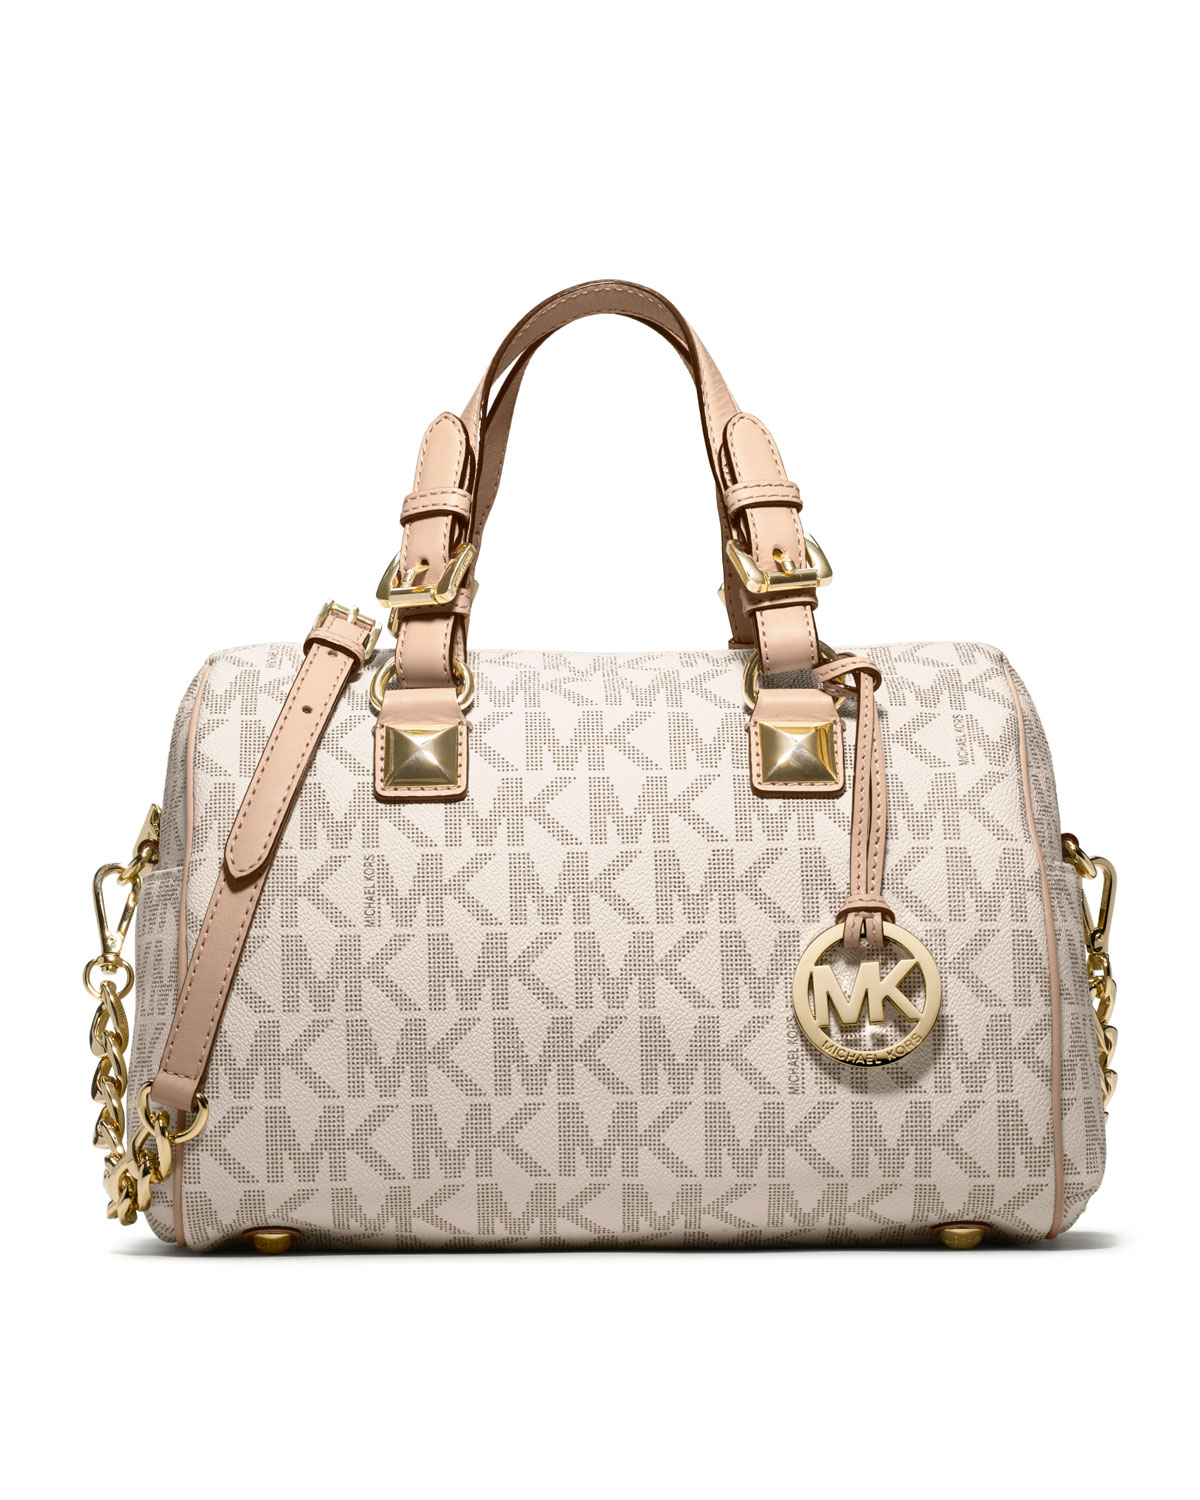 Shop for Michael Kors at Ulta Beauty. Special Free Gift with Purchase!